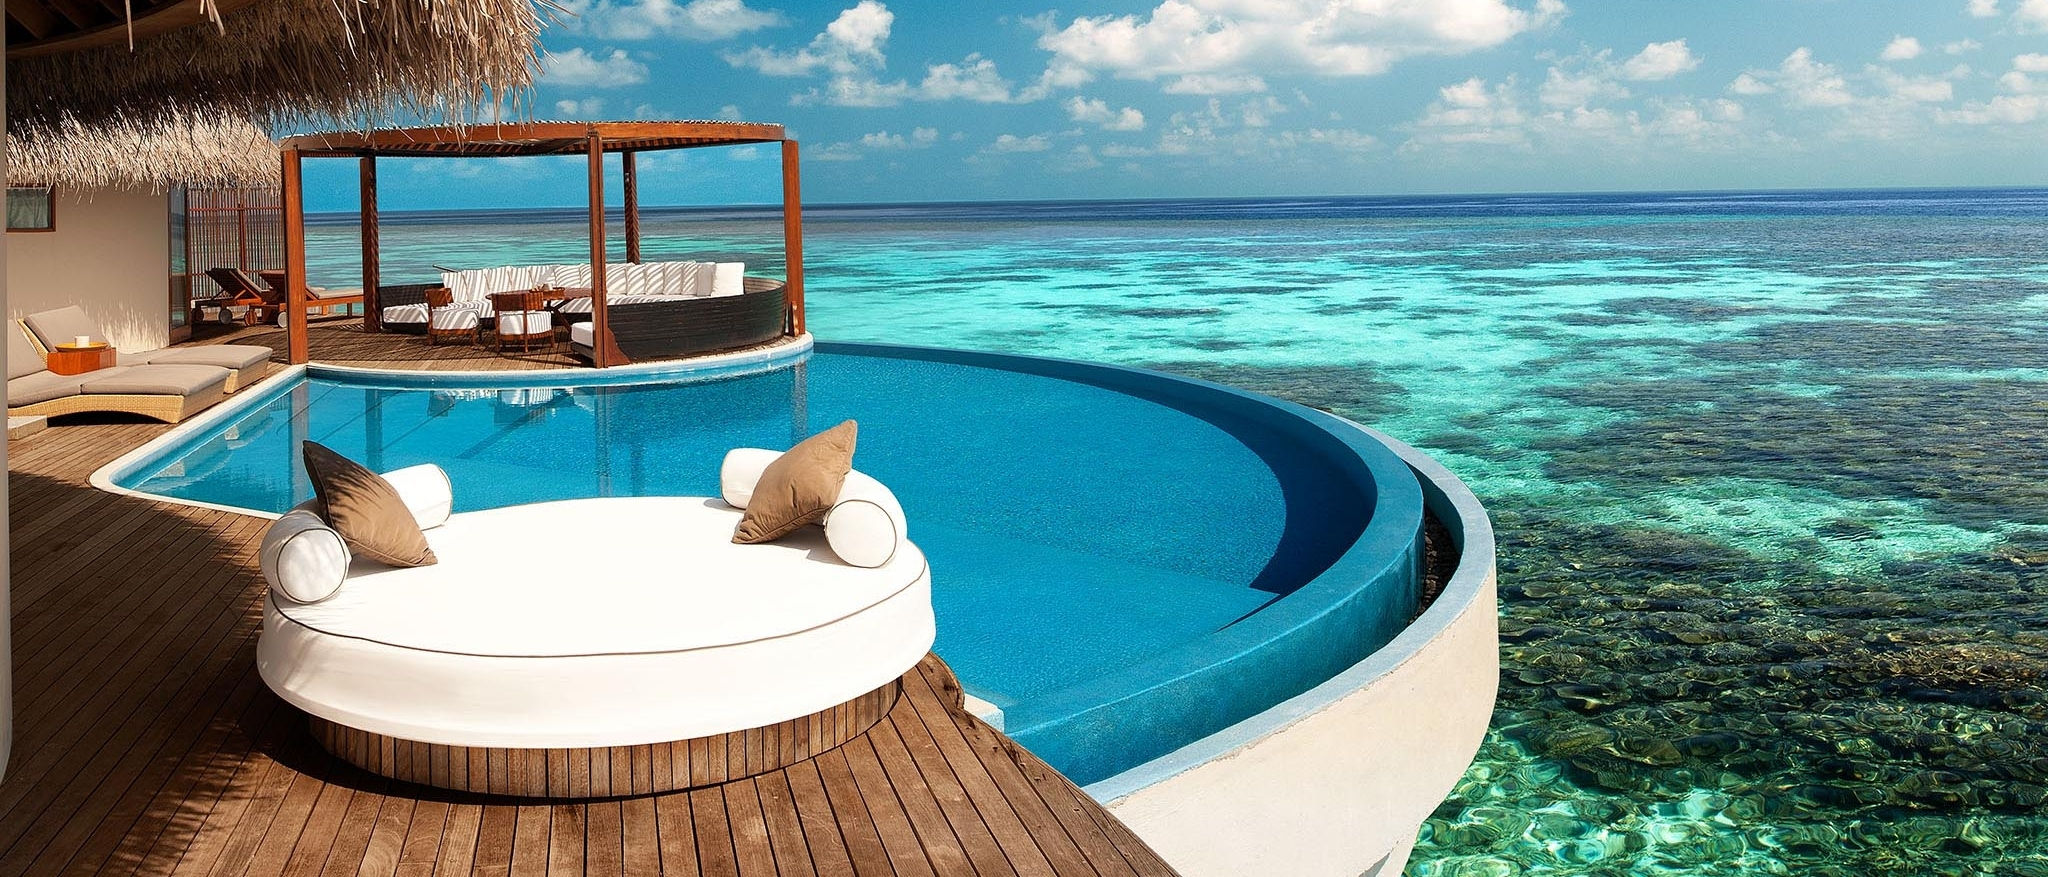 W Maldives - Extreme Wow Ocean Haven Private Pool